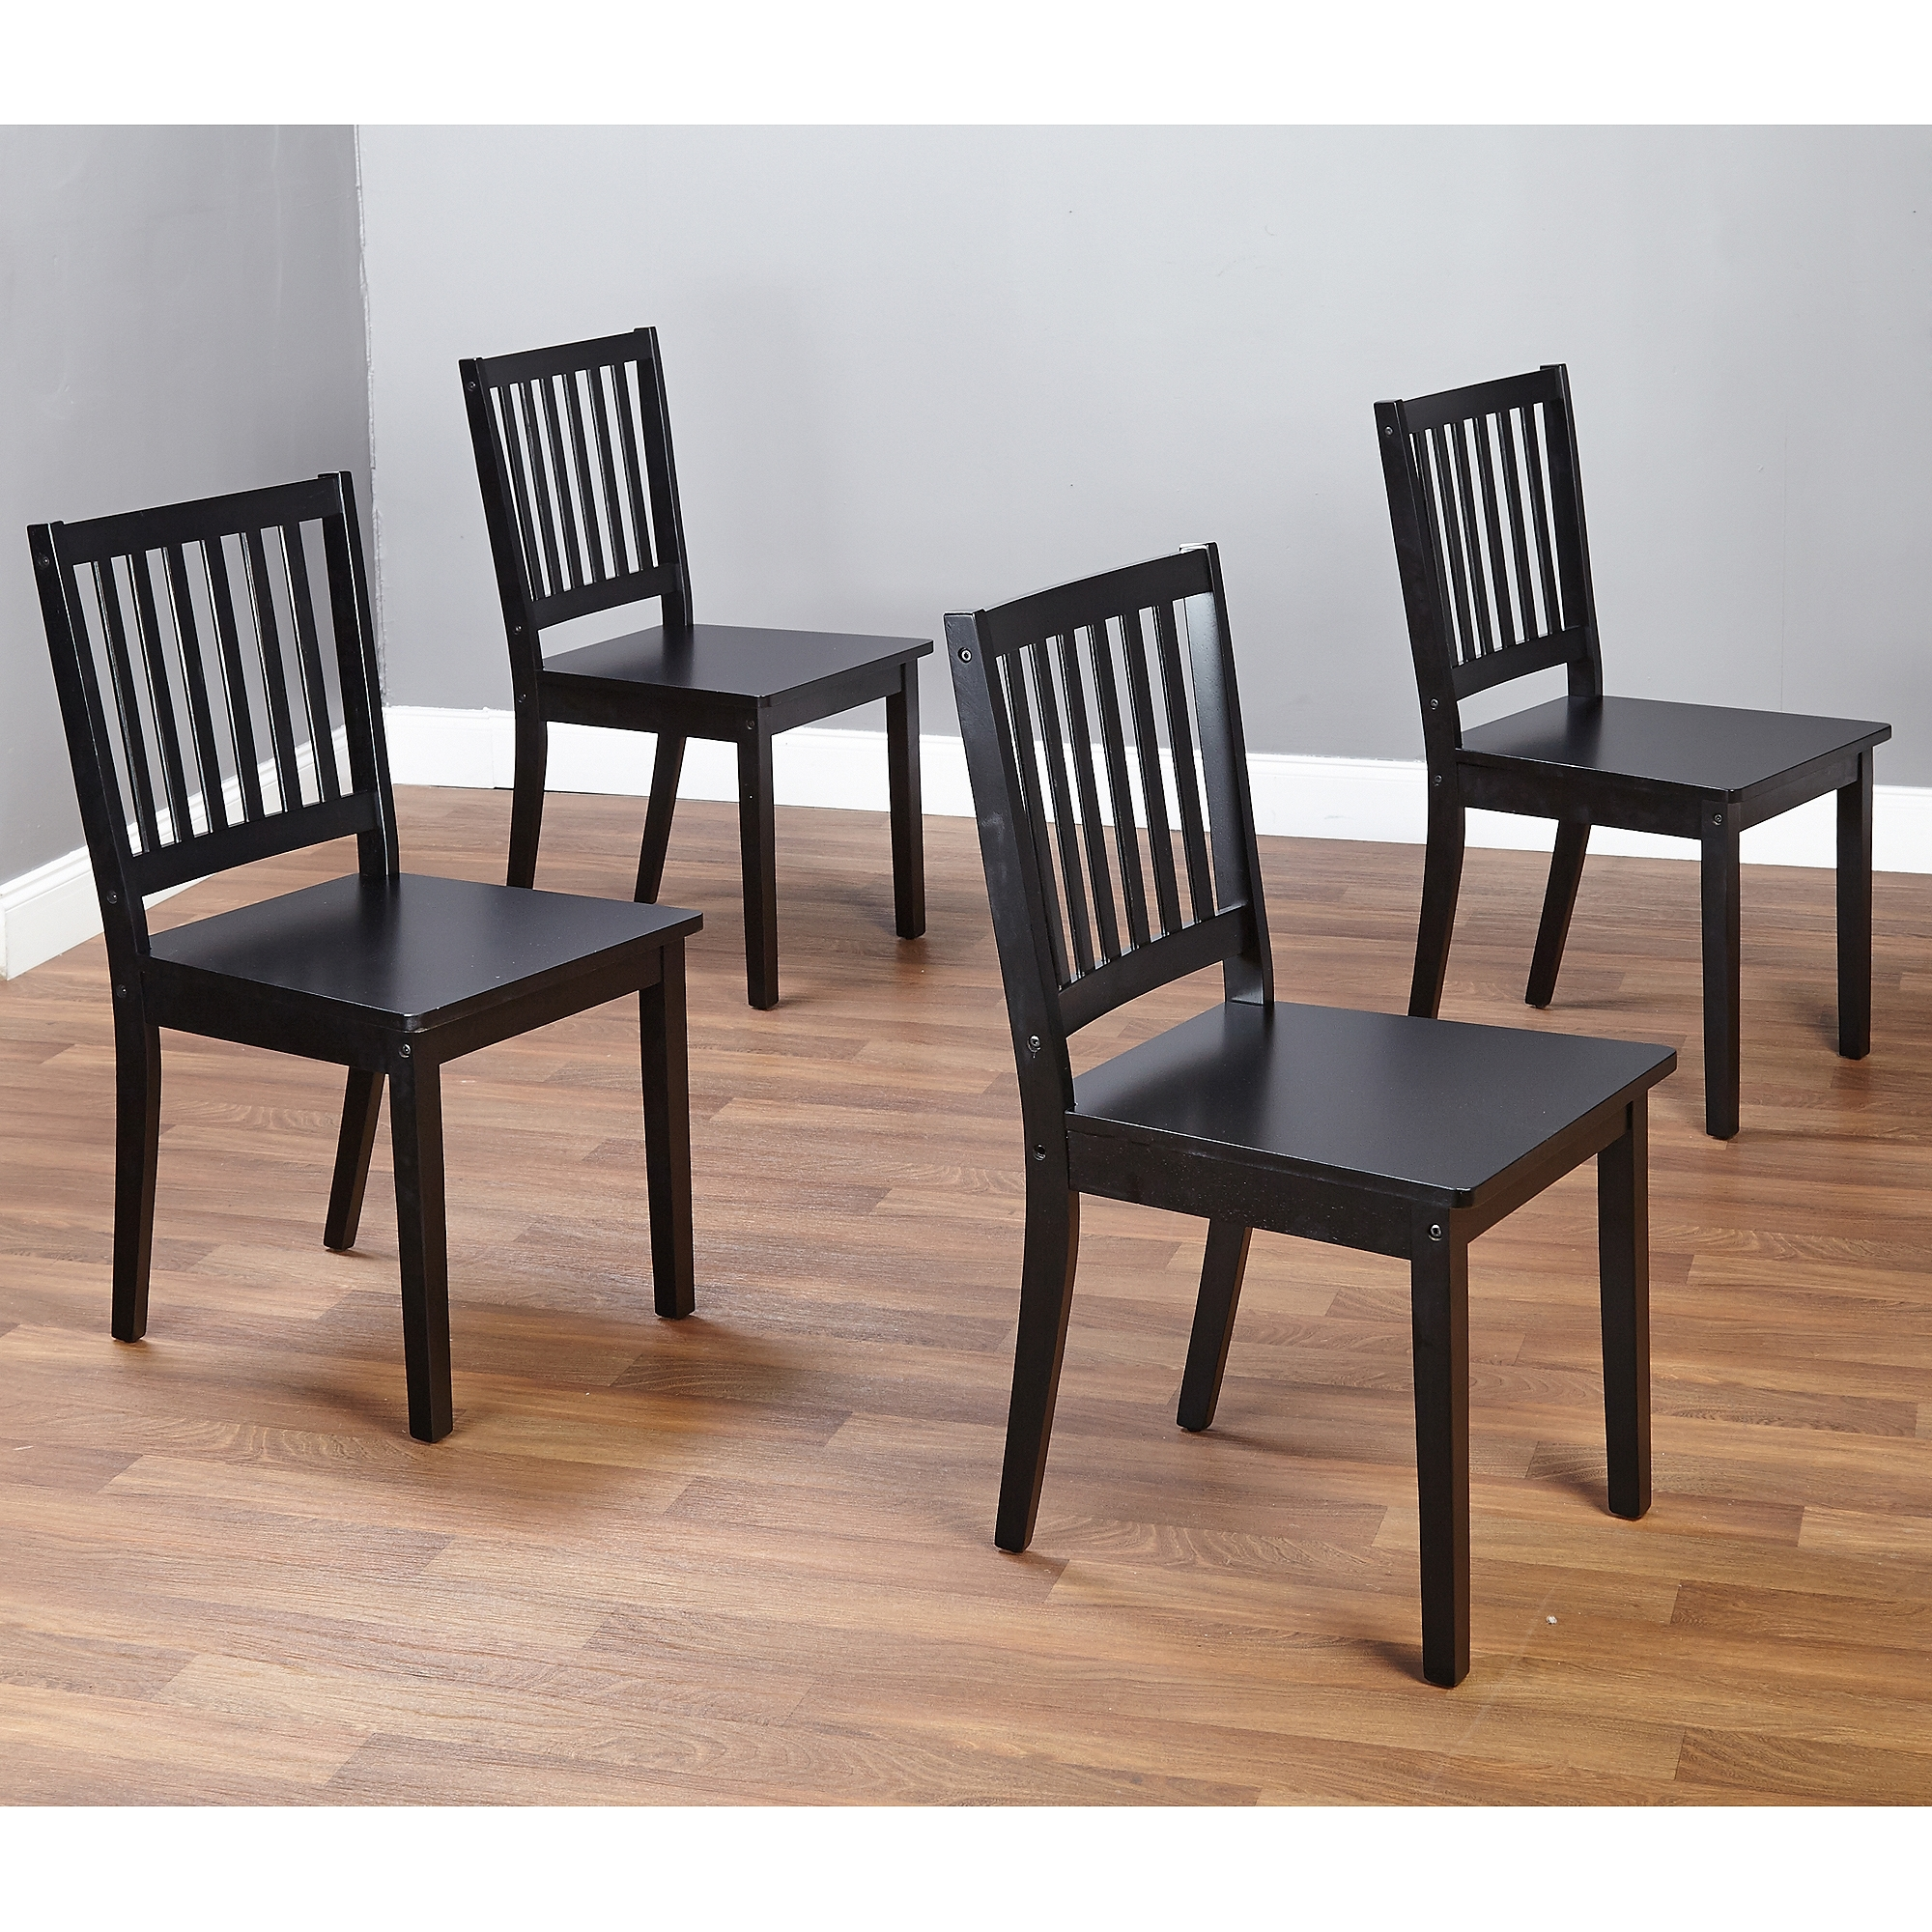 Shaker Dining Chairs Set Of 4 Black 24319100190 Ebay – Mebel Jepara Inside Newest Ebay Dining Chairs (View 20 of 25)